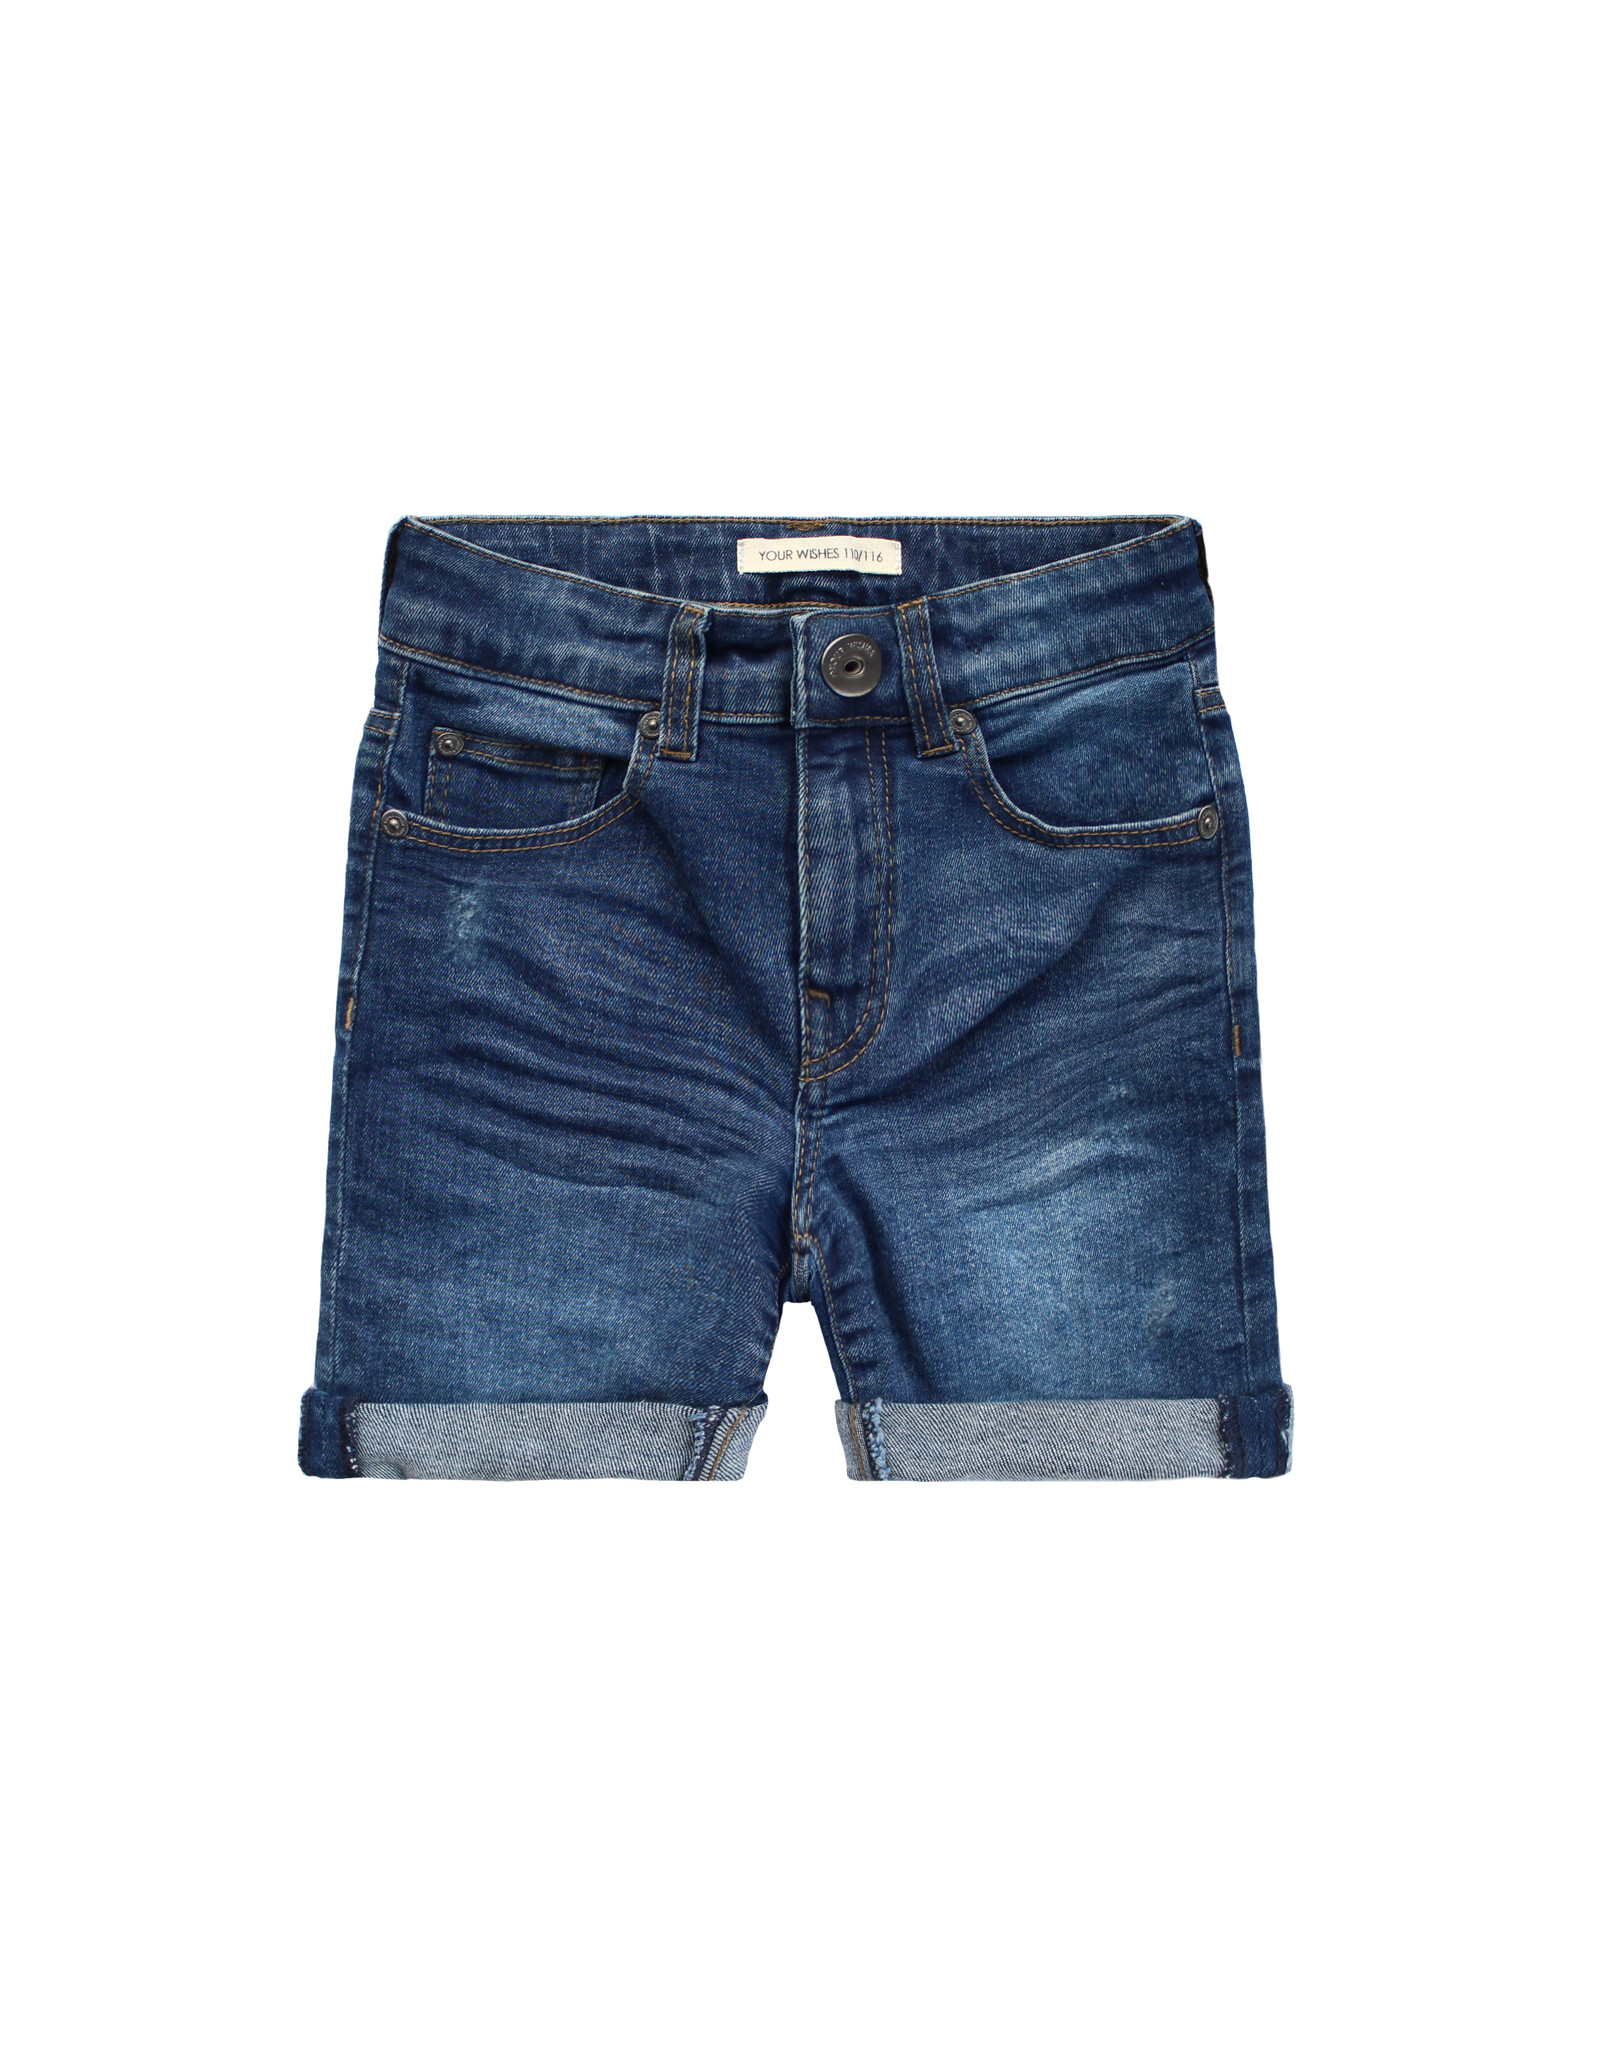 Your Wishes Your Wishes Denim Shorts Medium Blue